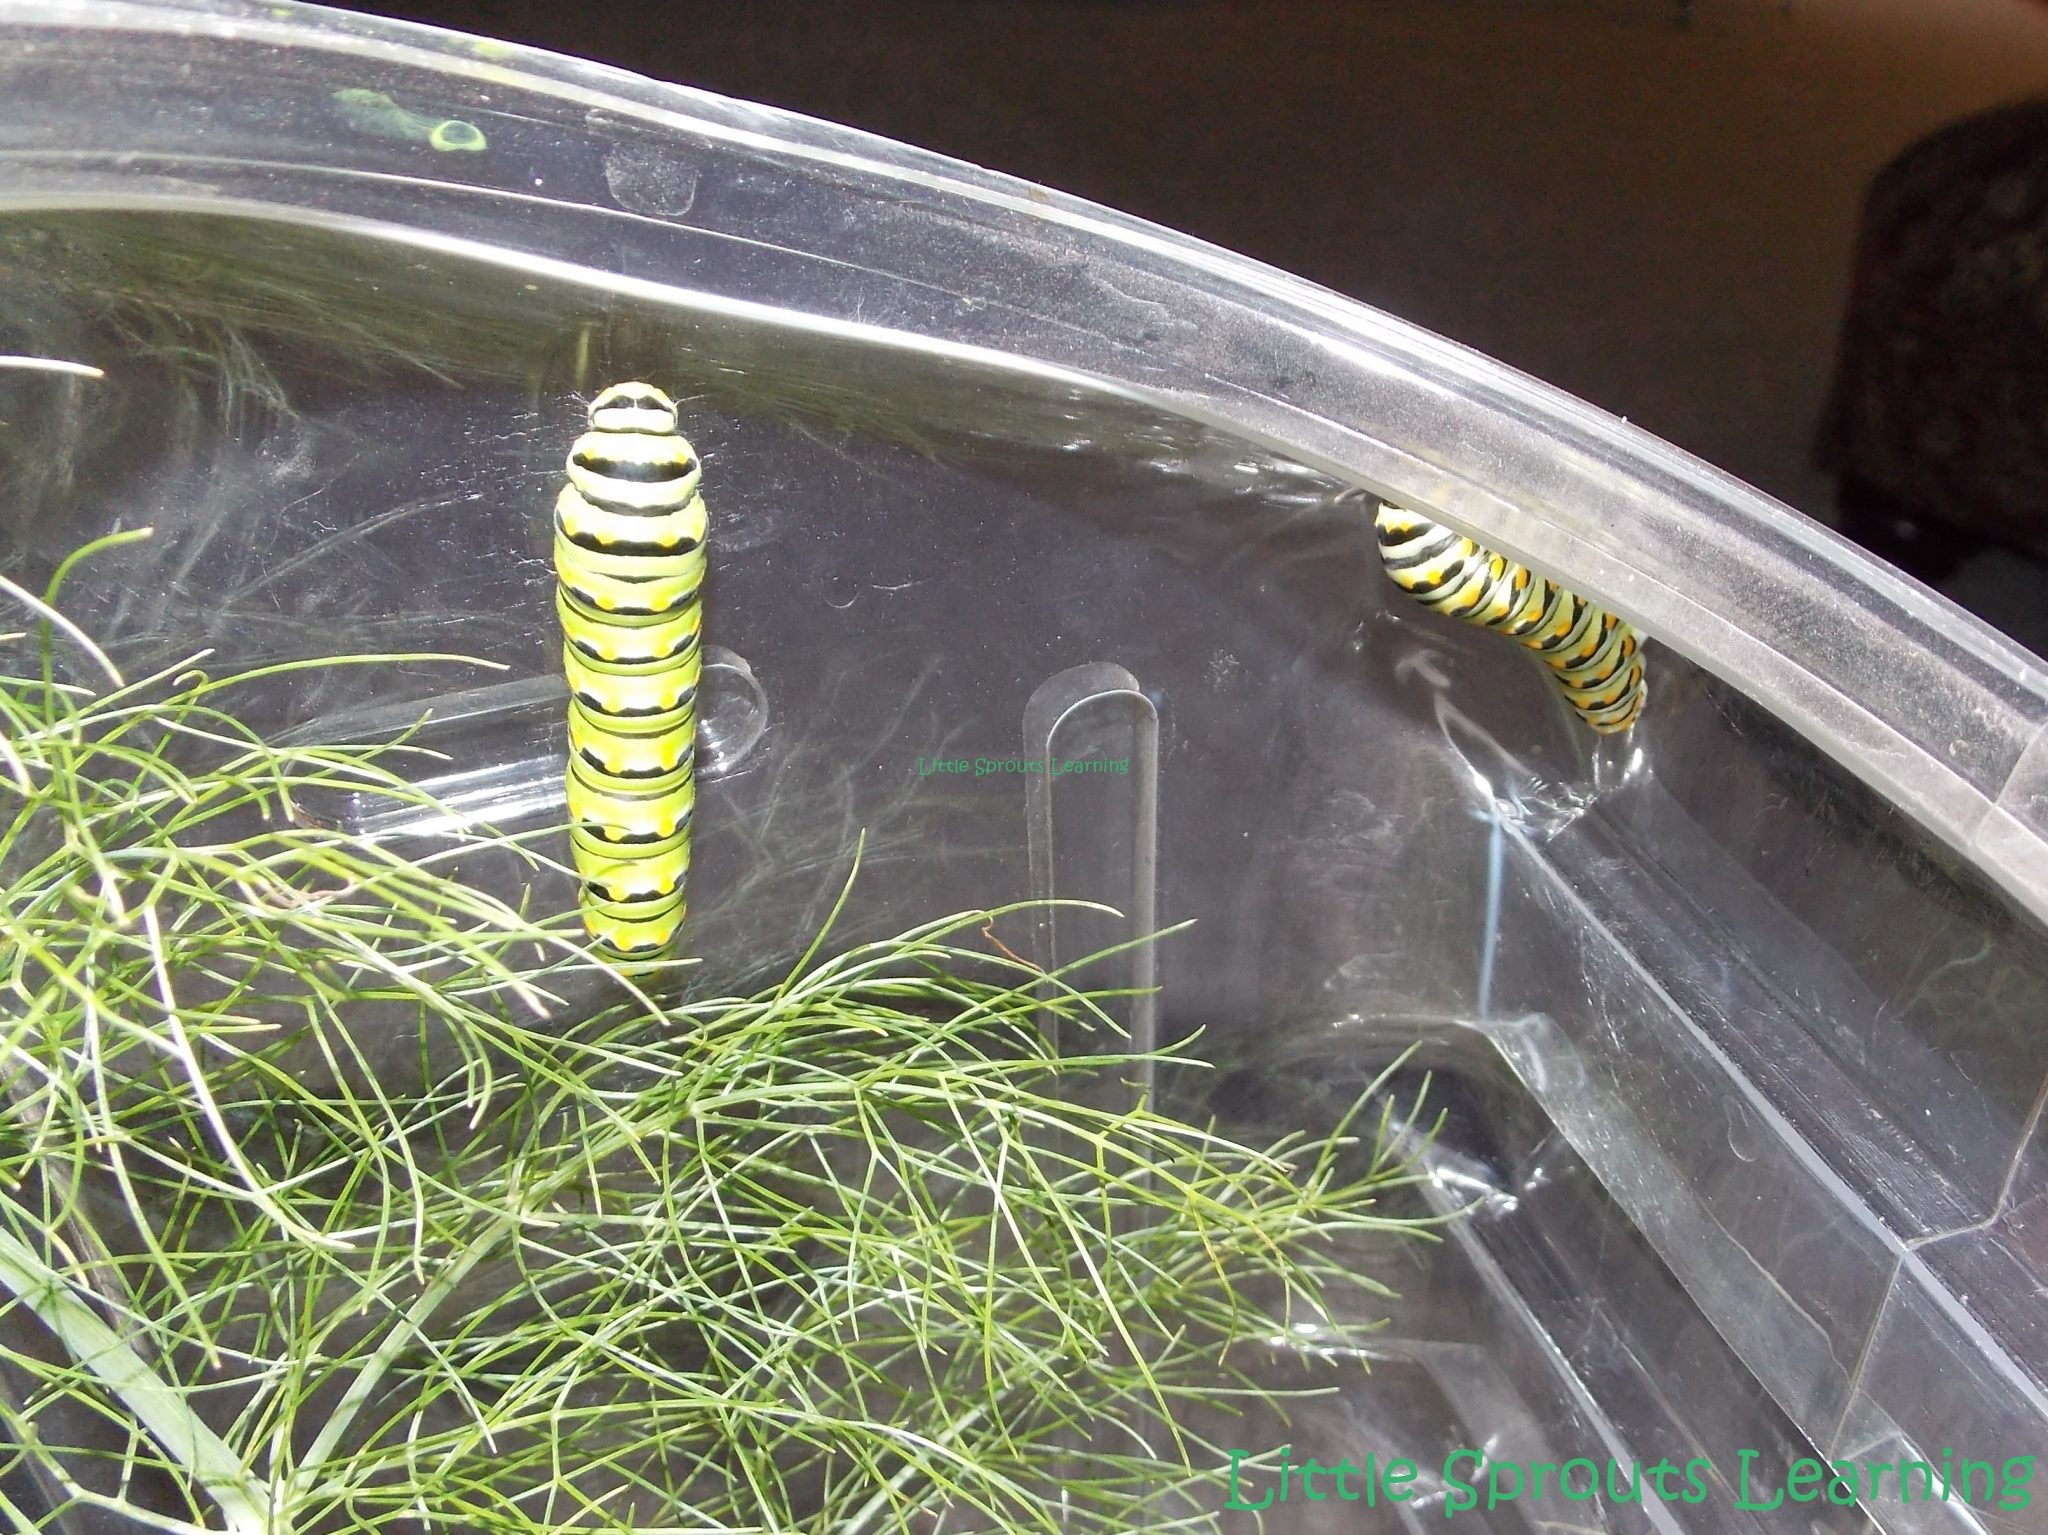 clear plastic box wtih black swallowtail caterpillars and fennel to feed them for life cycle study of butterflies